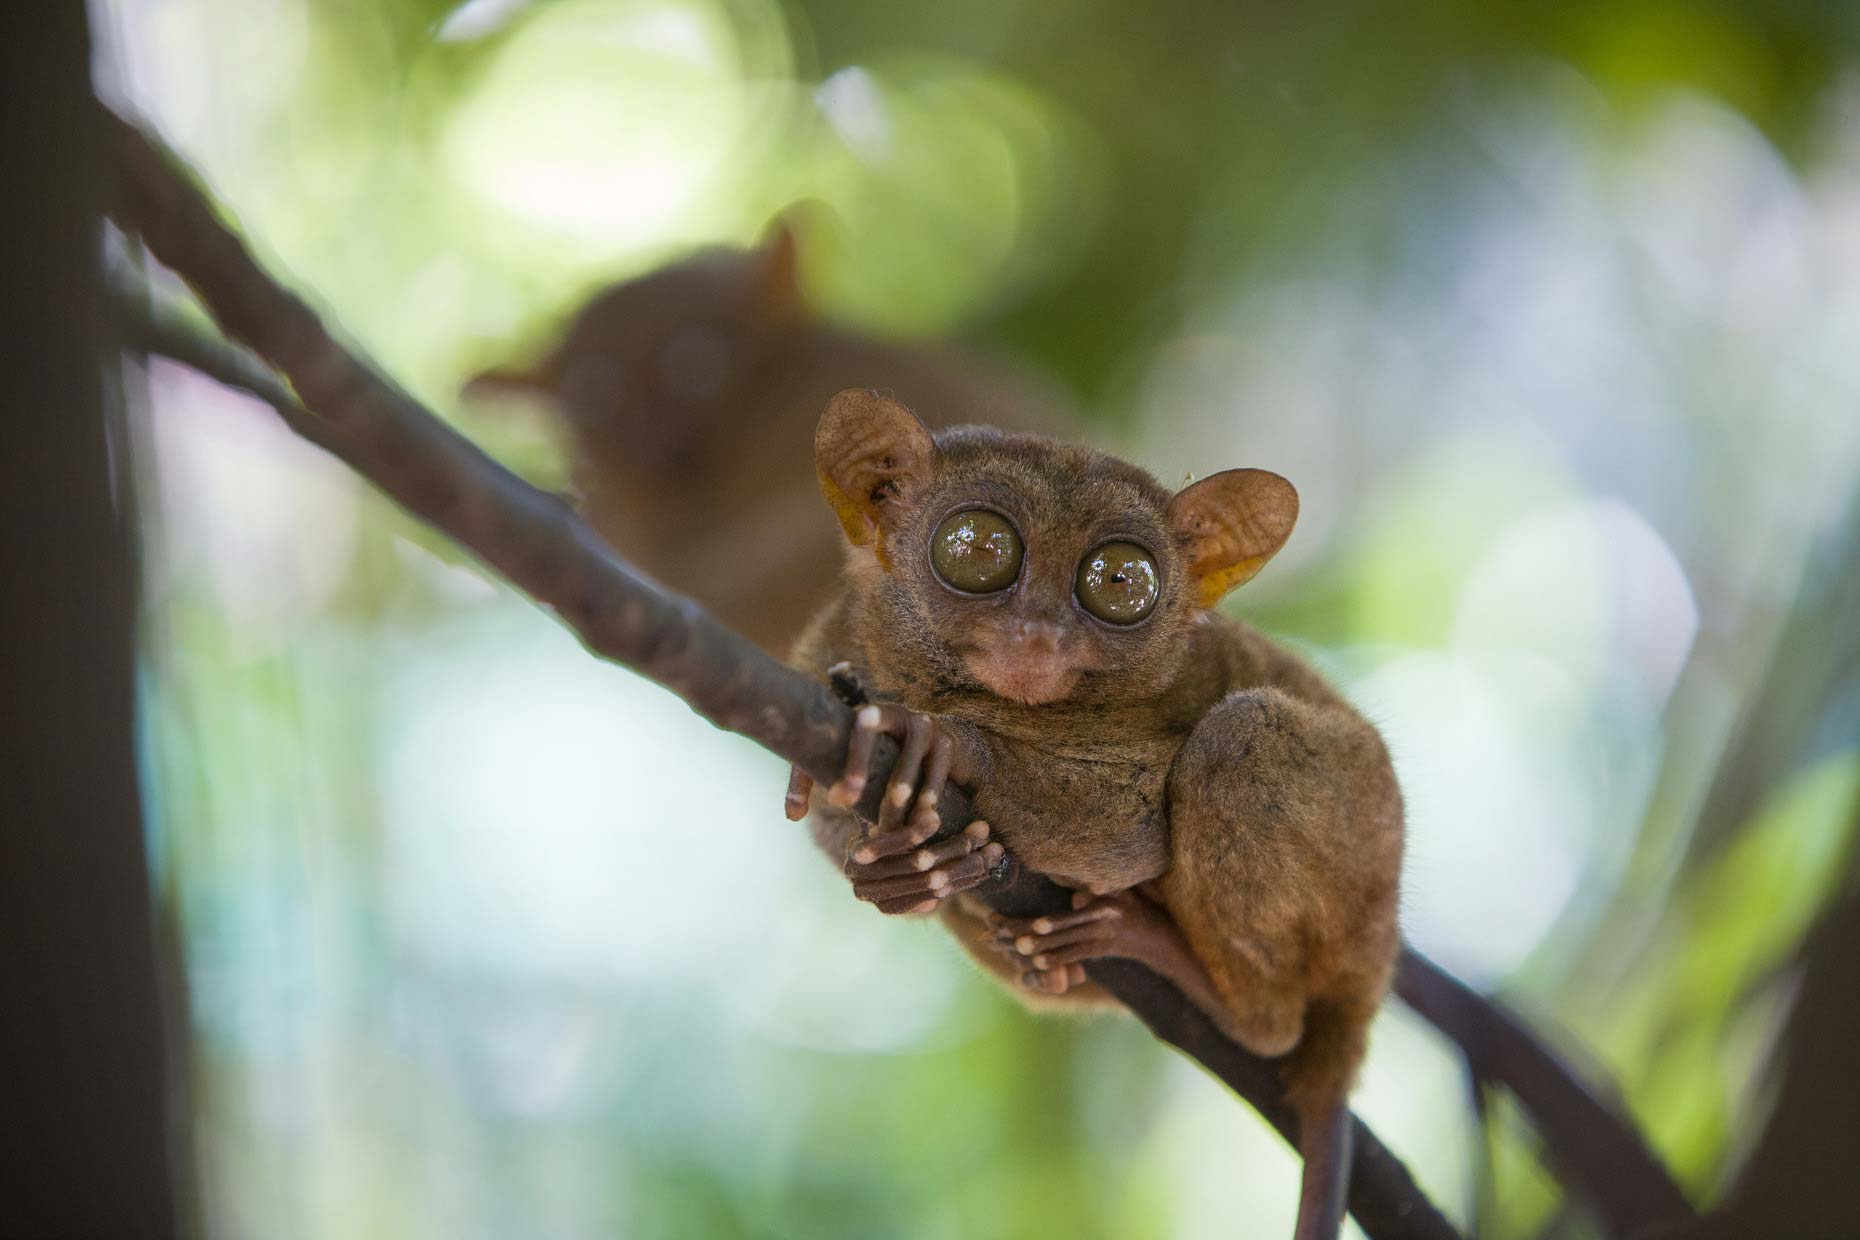 Tarsier monkey eyes